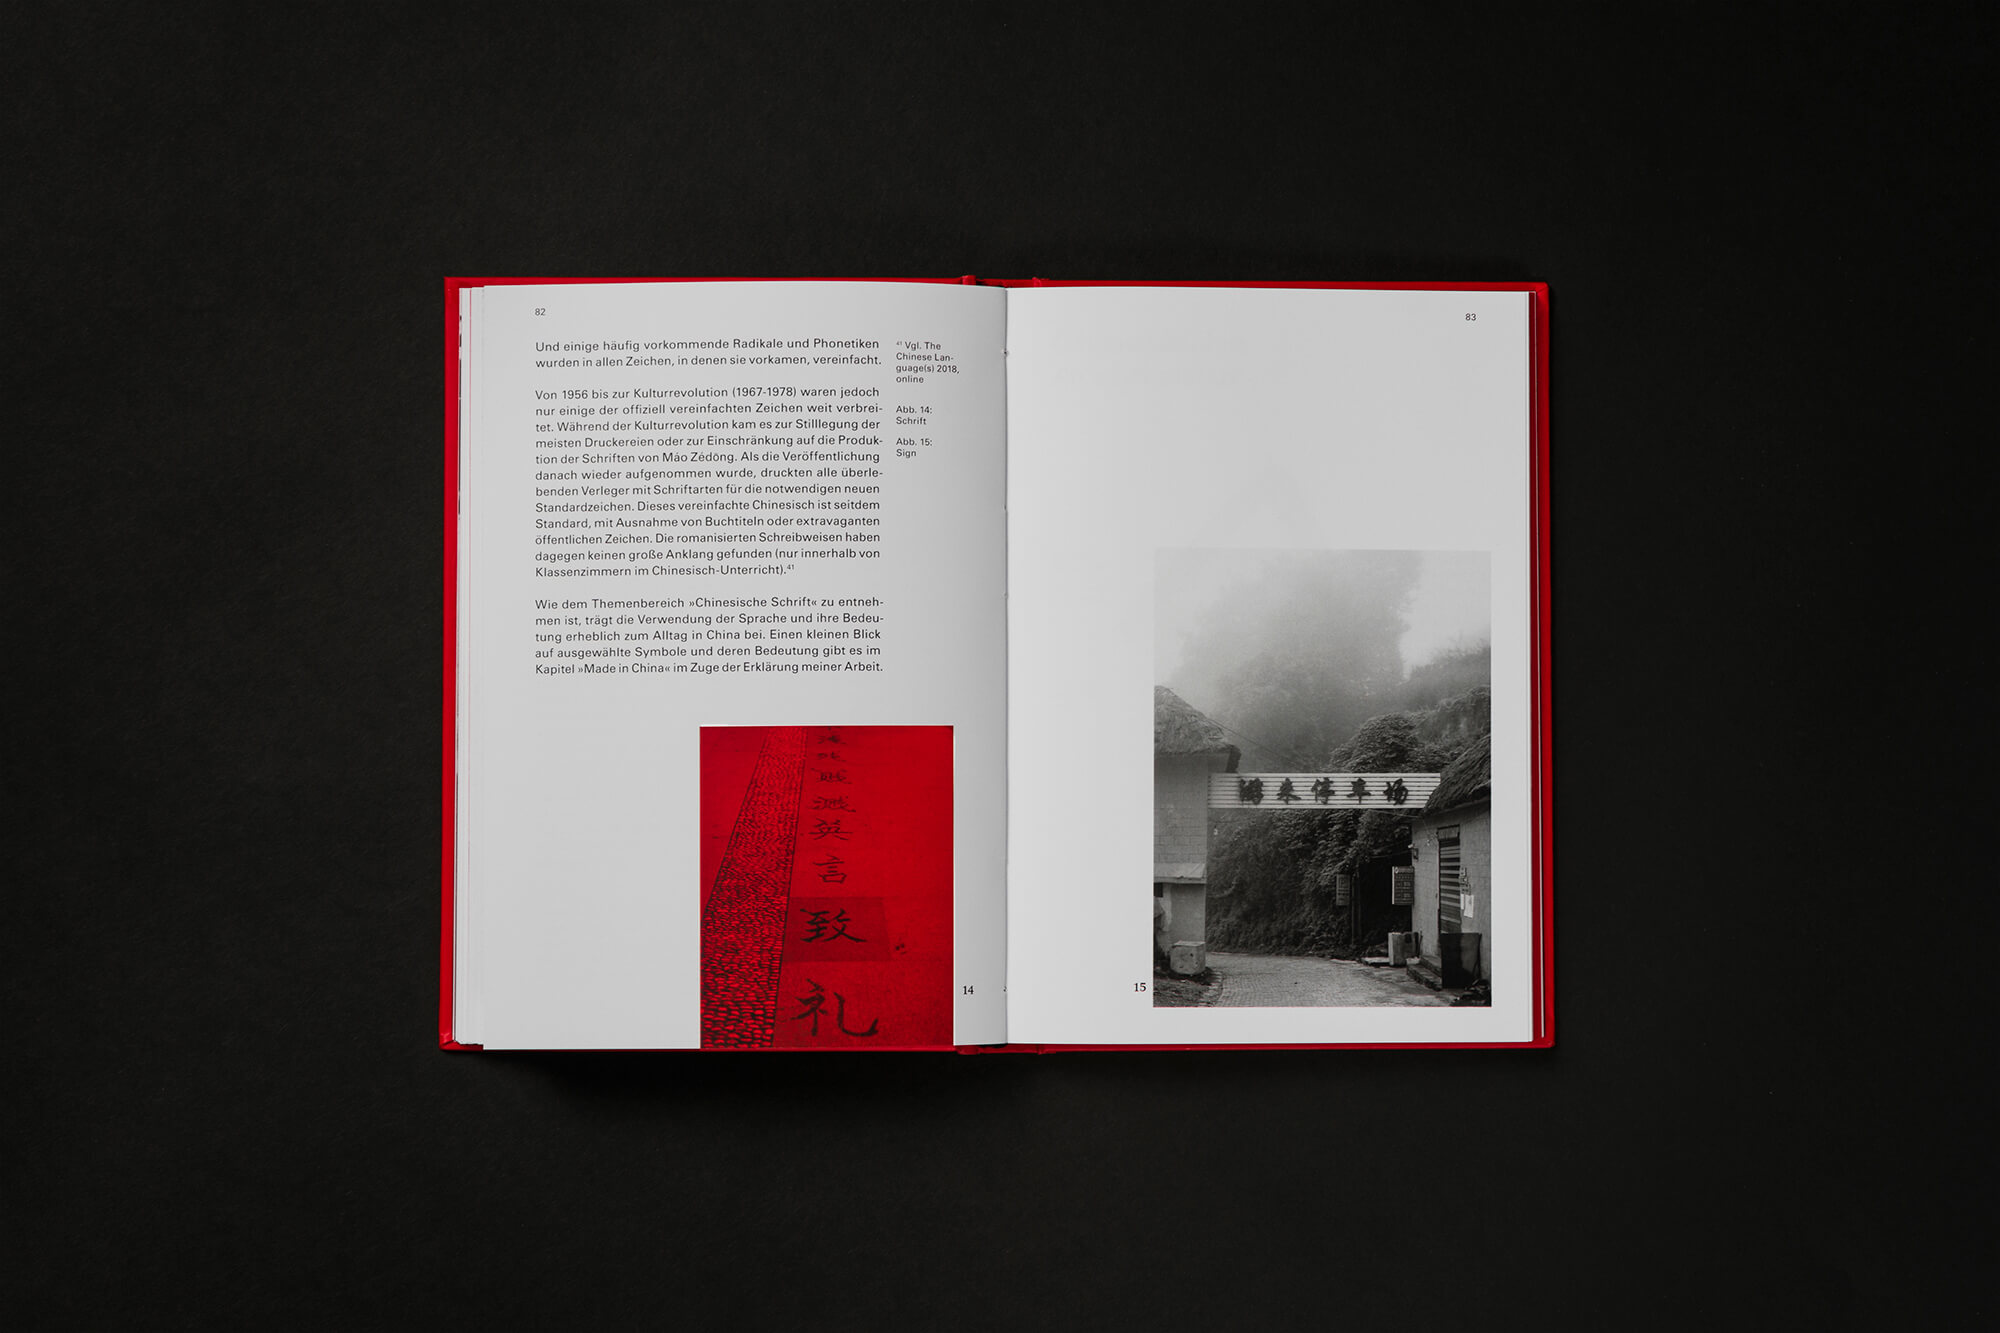 c-leban_views-of-china-book-9